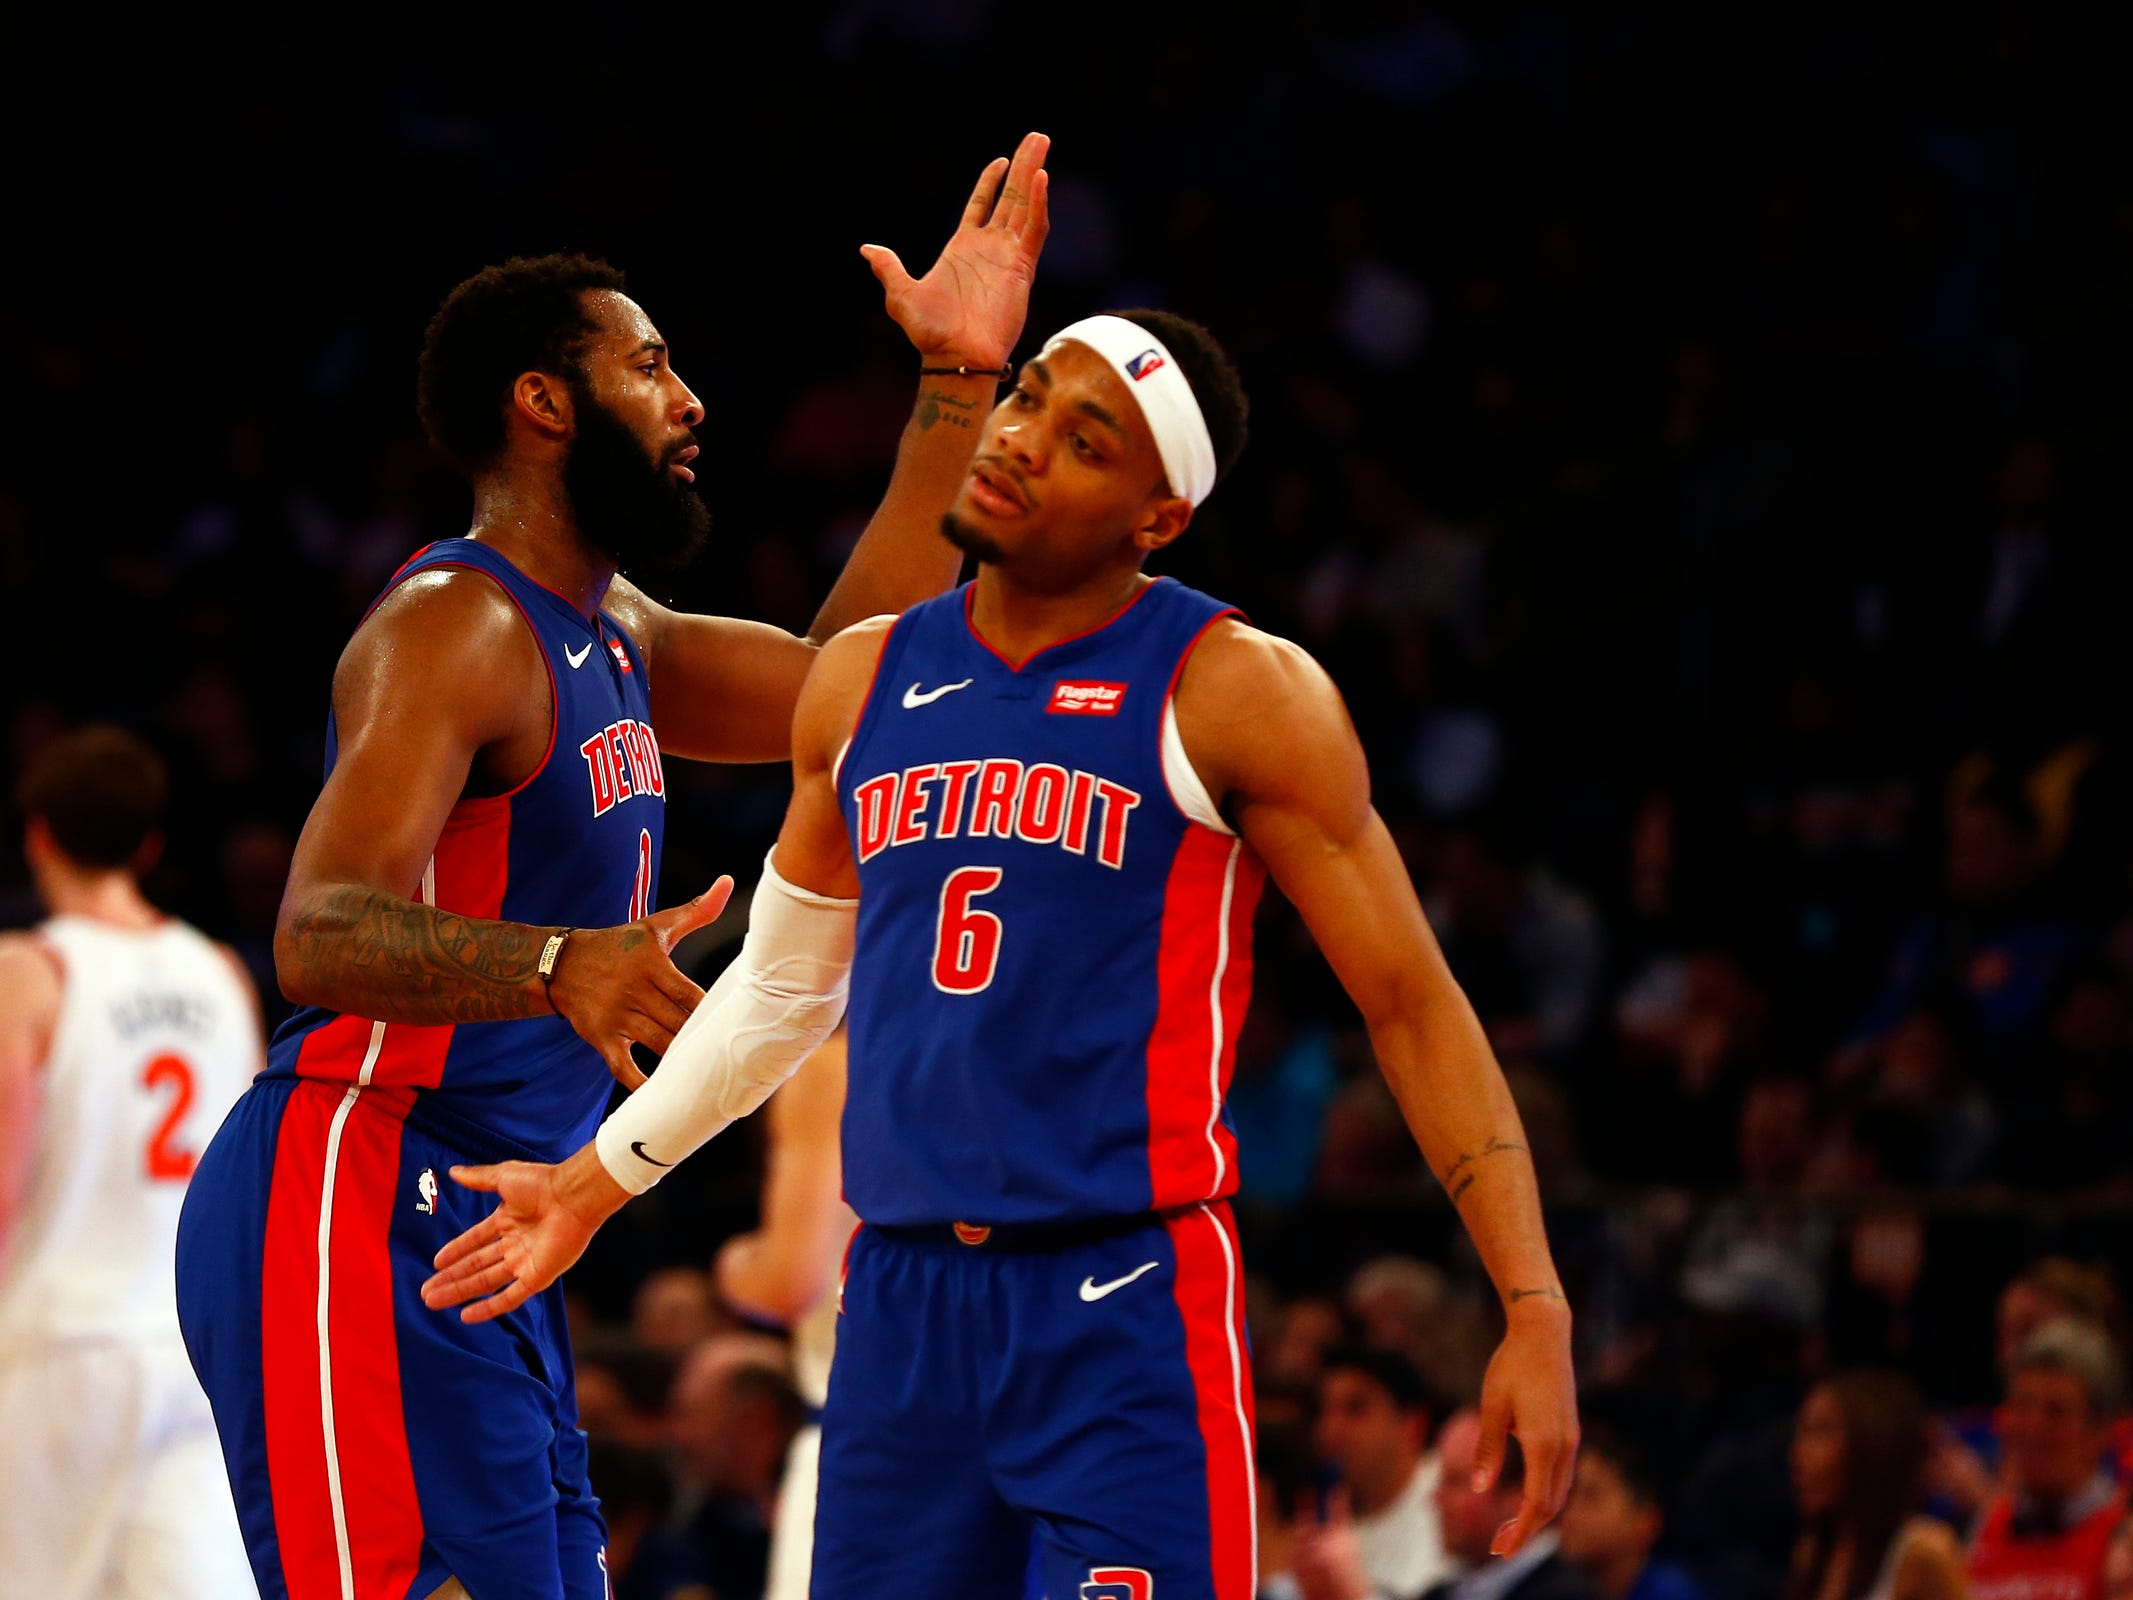 Detroit Pistons center Andre Drummond (0) and Detroit Pistons guard Bruce Brown (6) celebrate against the New York Knicks during the second half at Madison Square Garden on Wednesday, April 10, 2019.